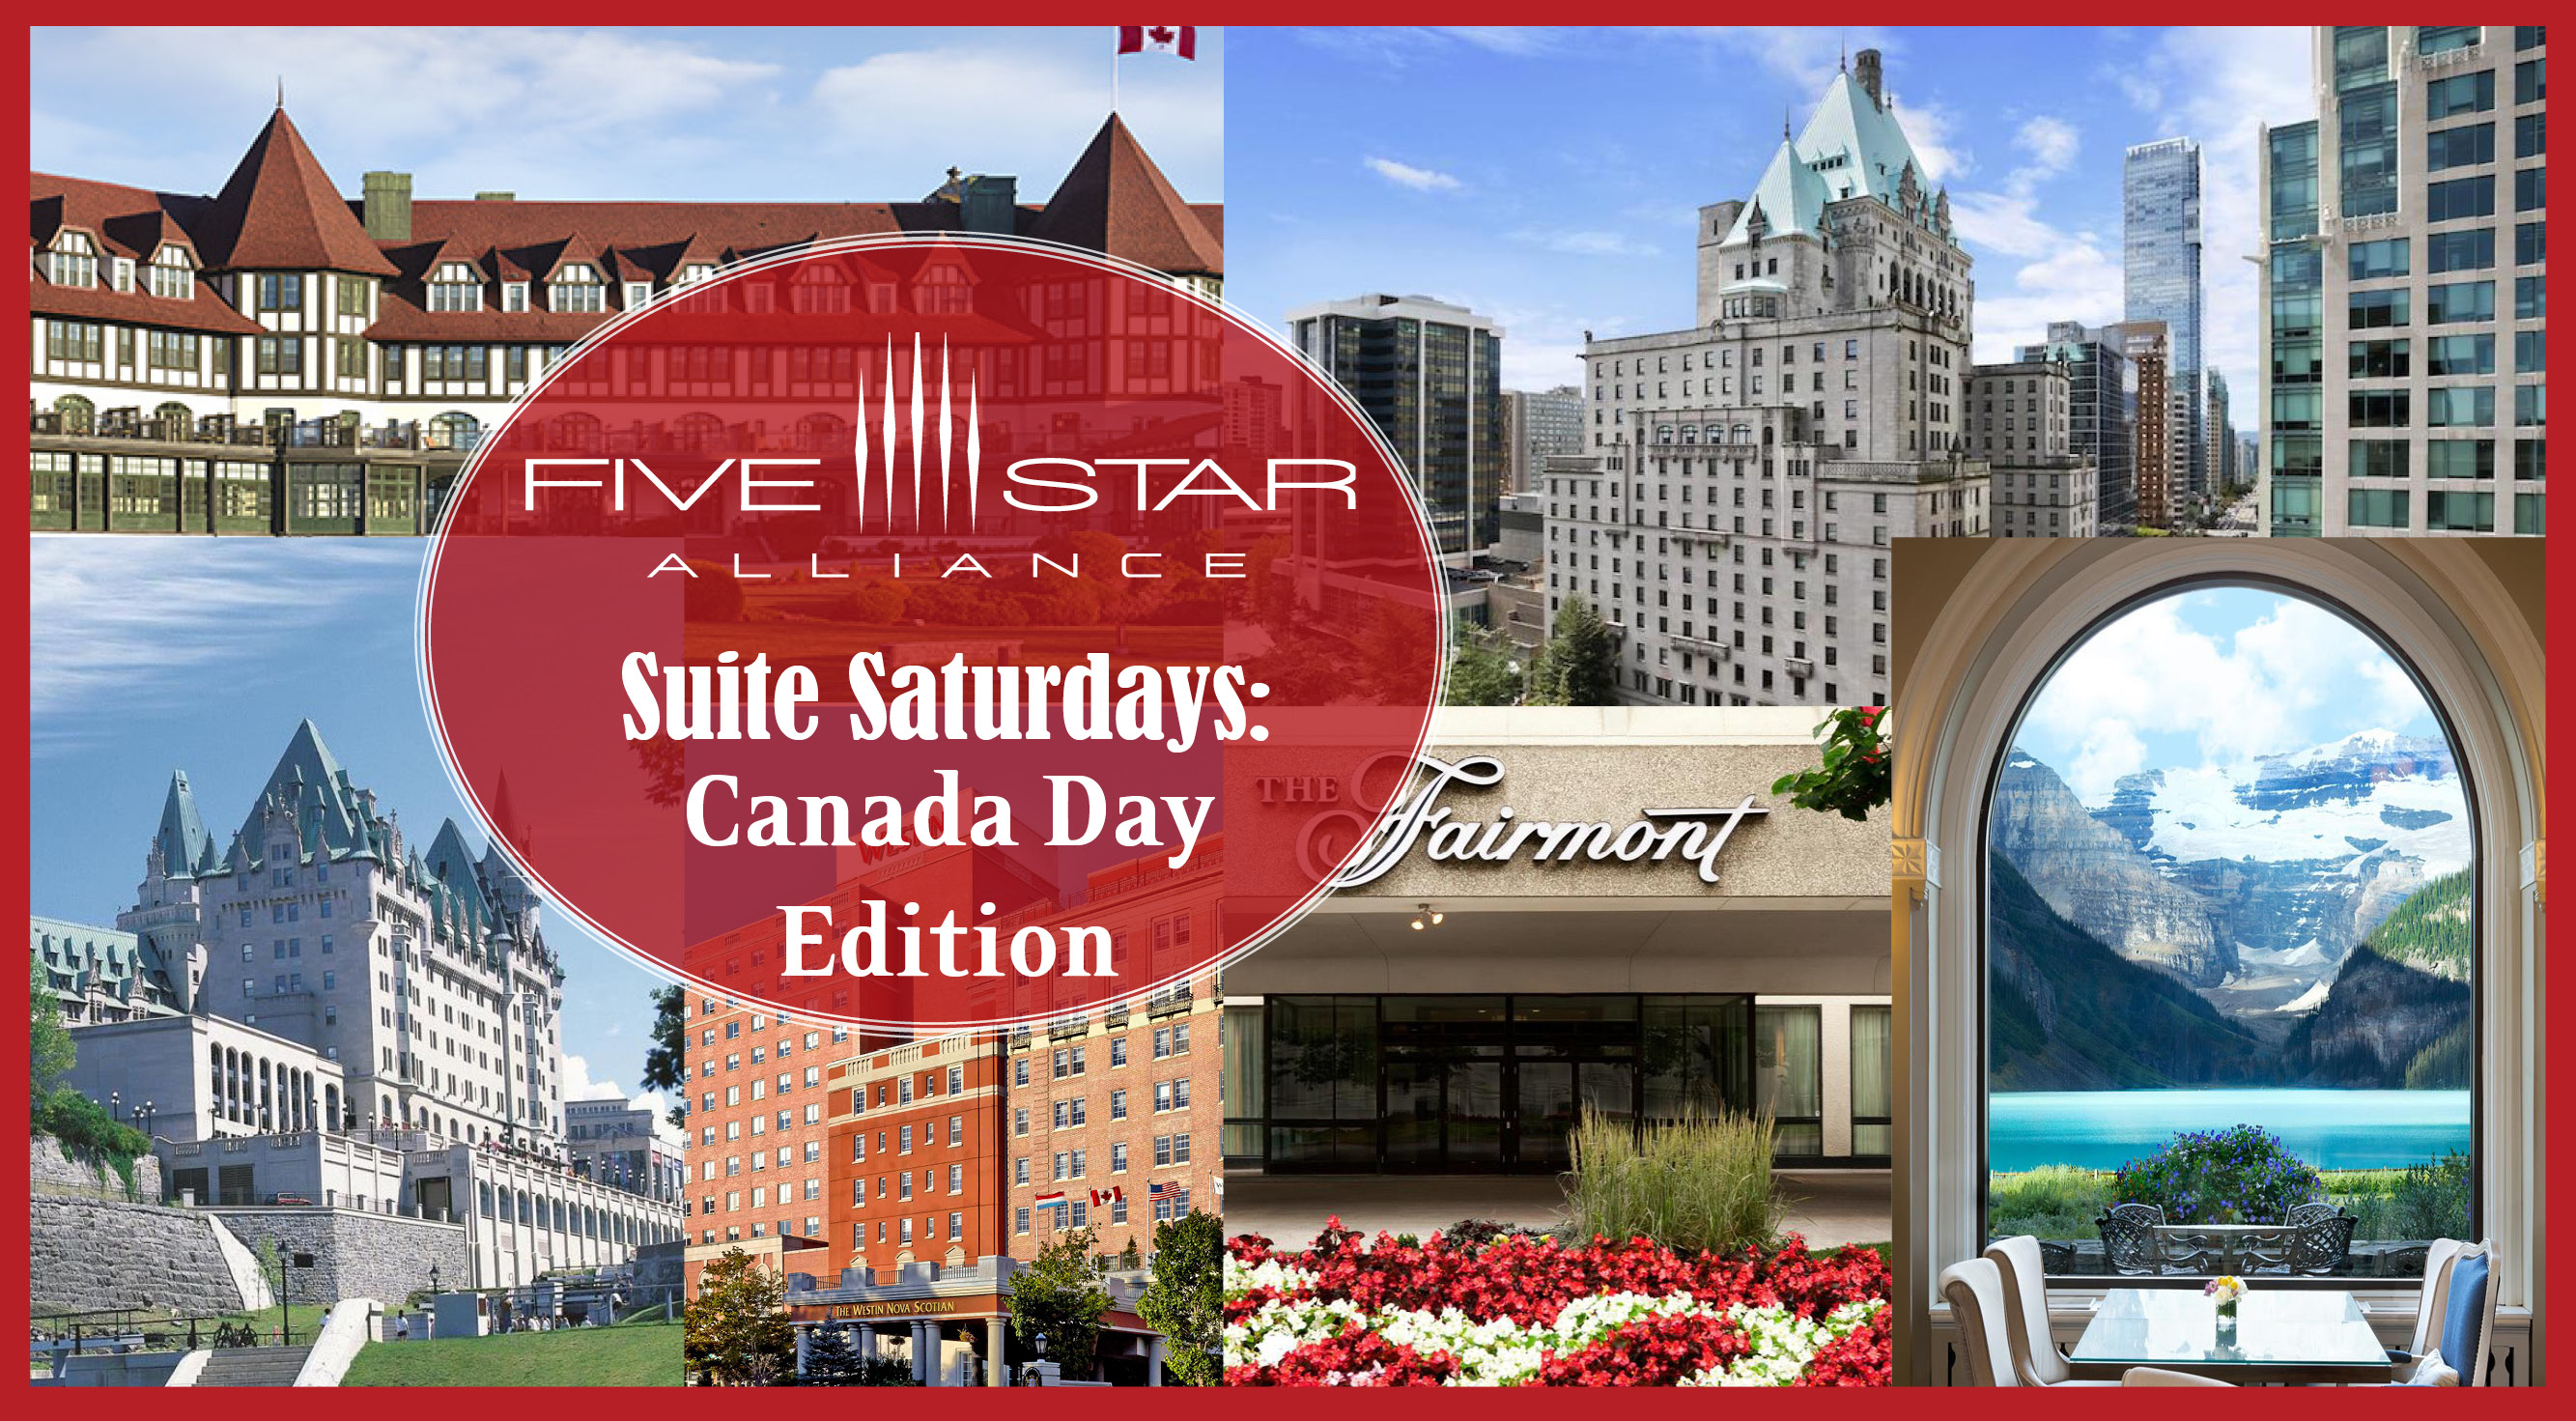 Suite Saturdays Canada Day